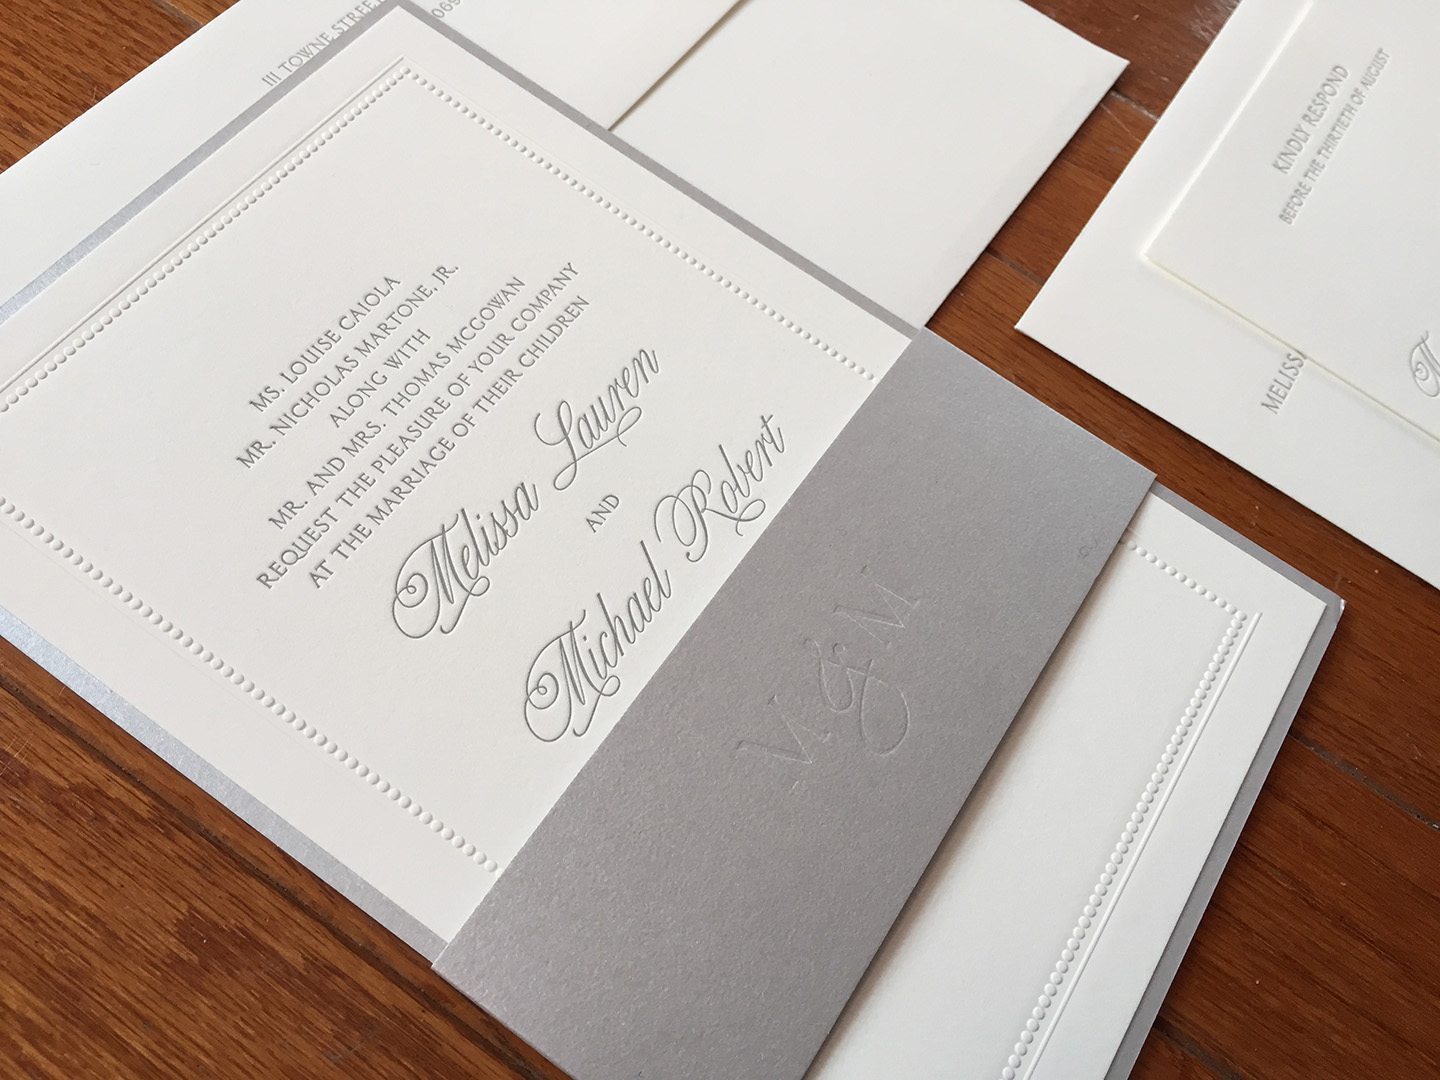 Melissa + Michael | Wedding Invitation, Letterpress with Metallic Bellyband